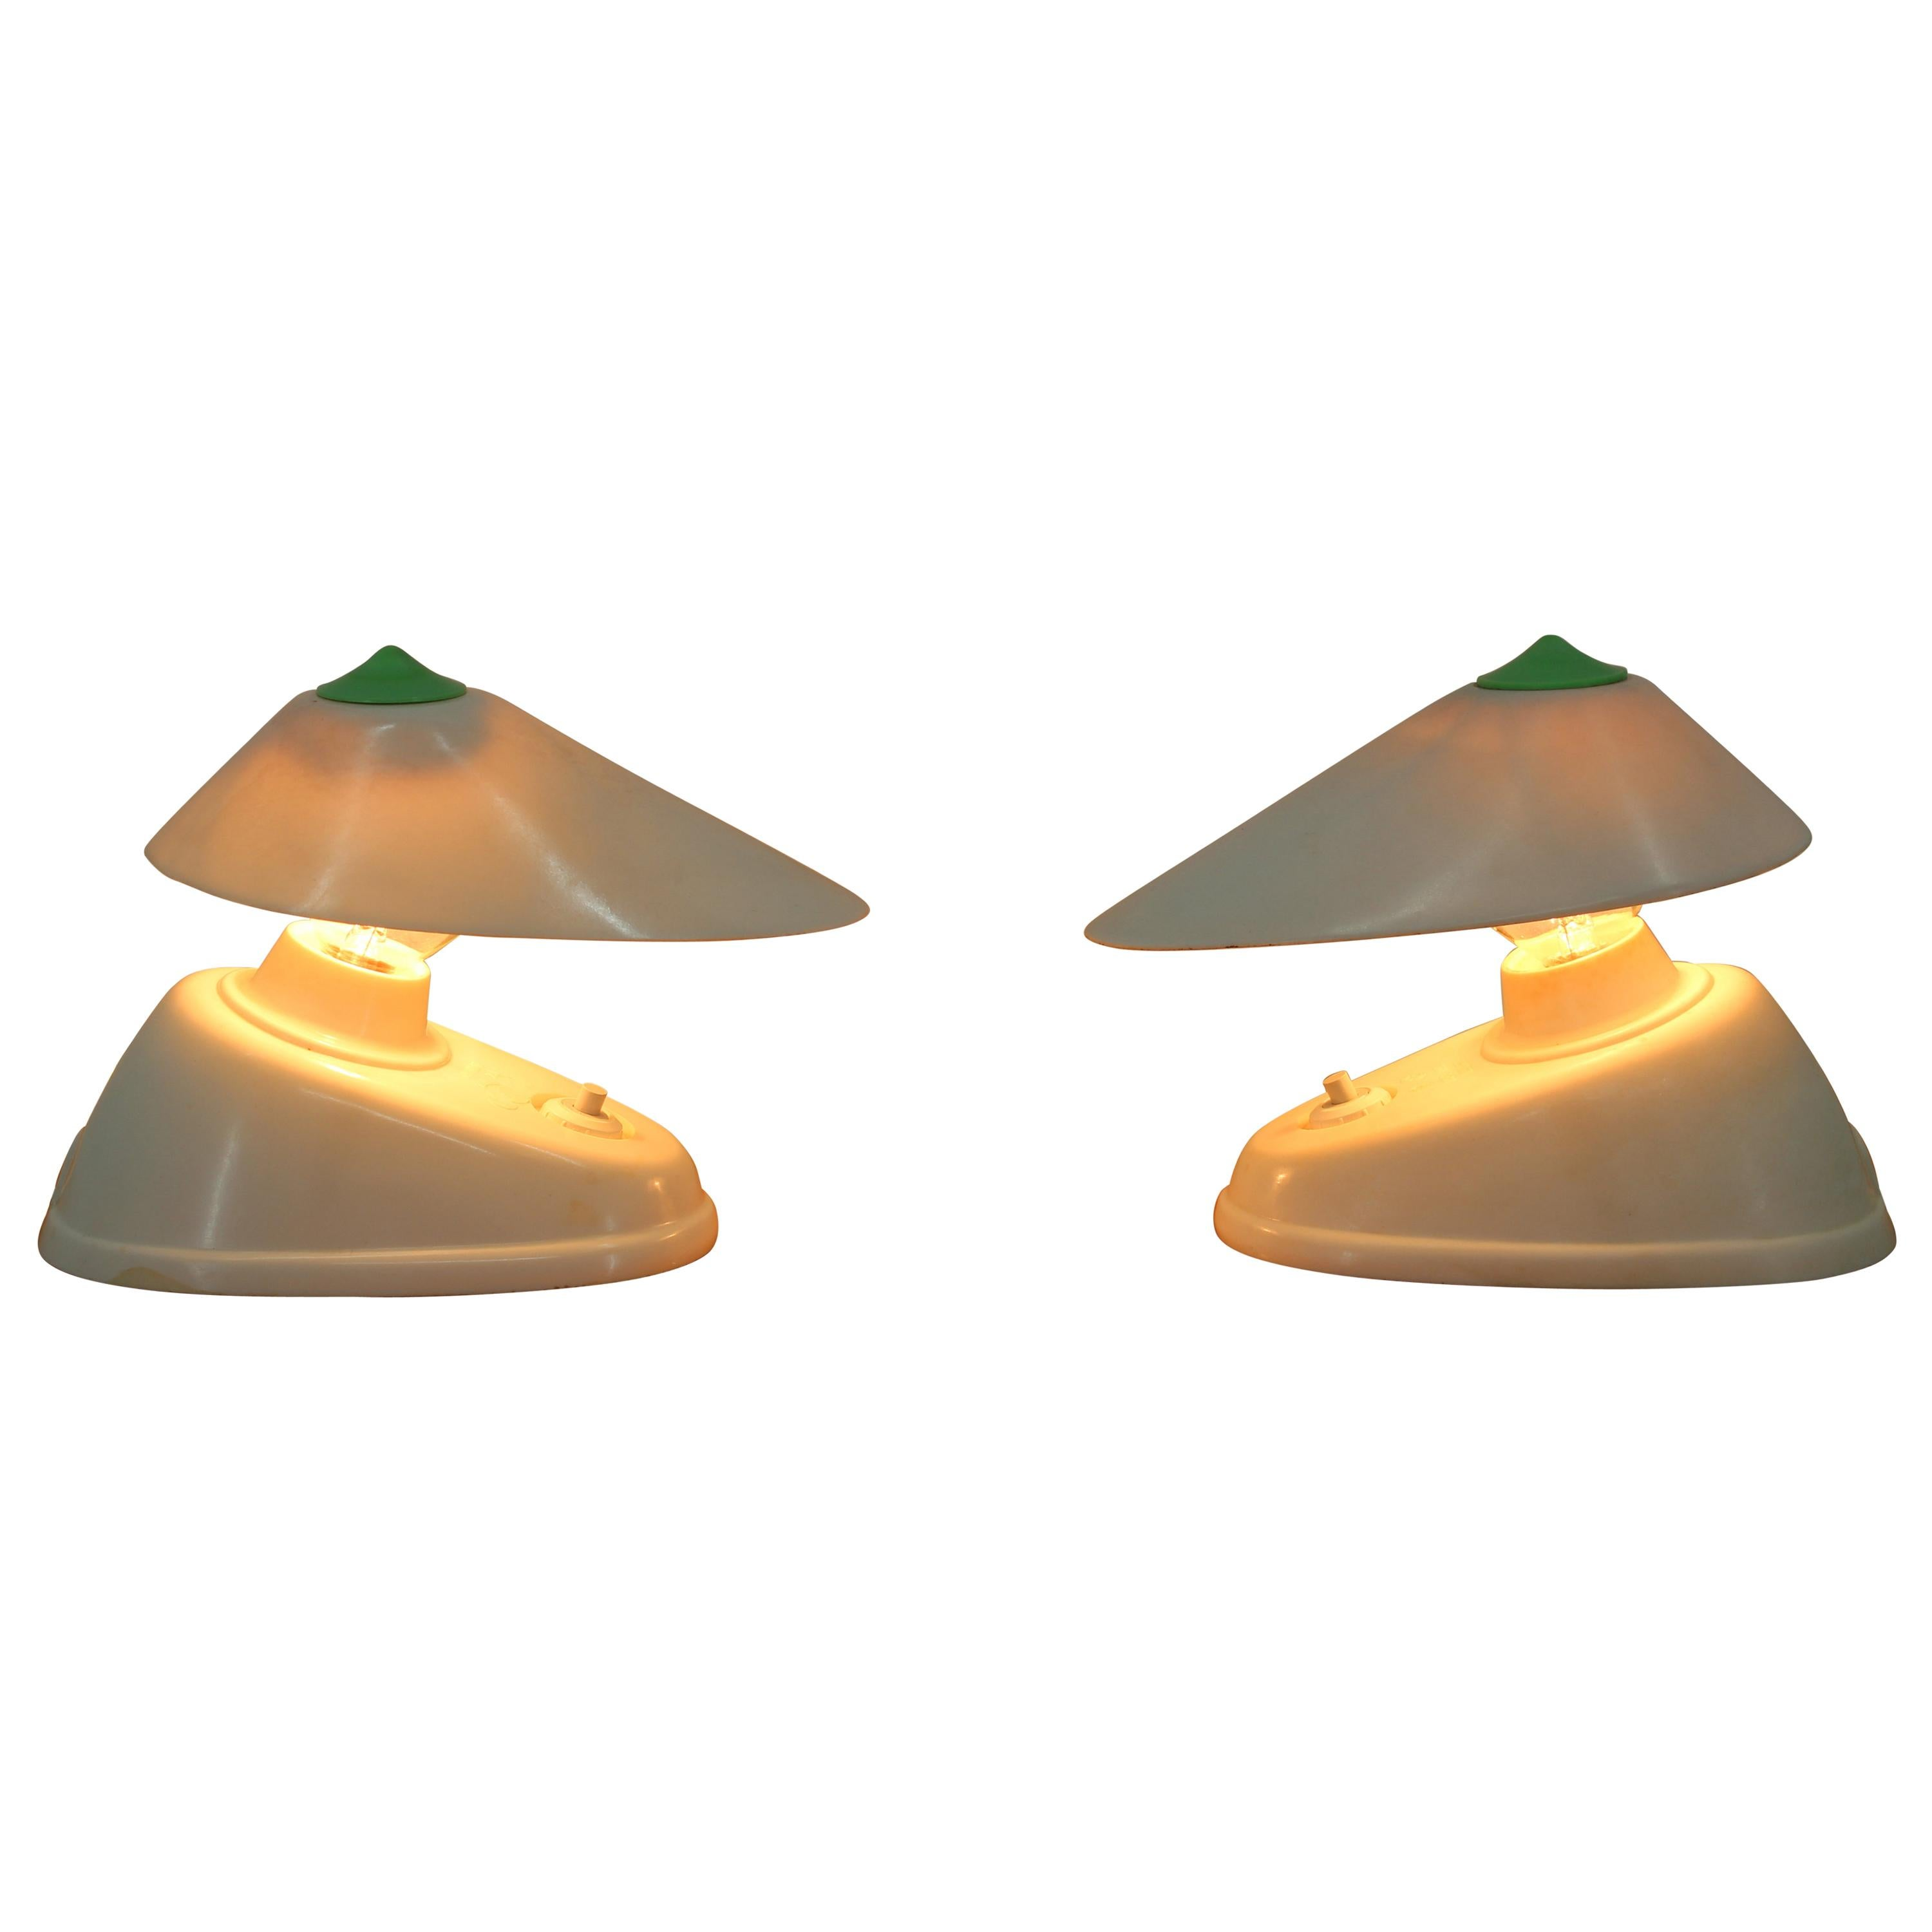 Pair of Midcentury Table or Wall Lamps, 1960s